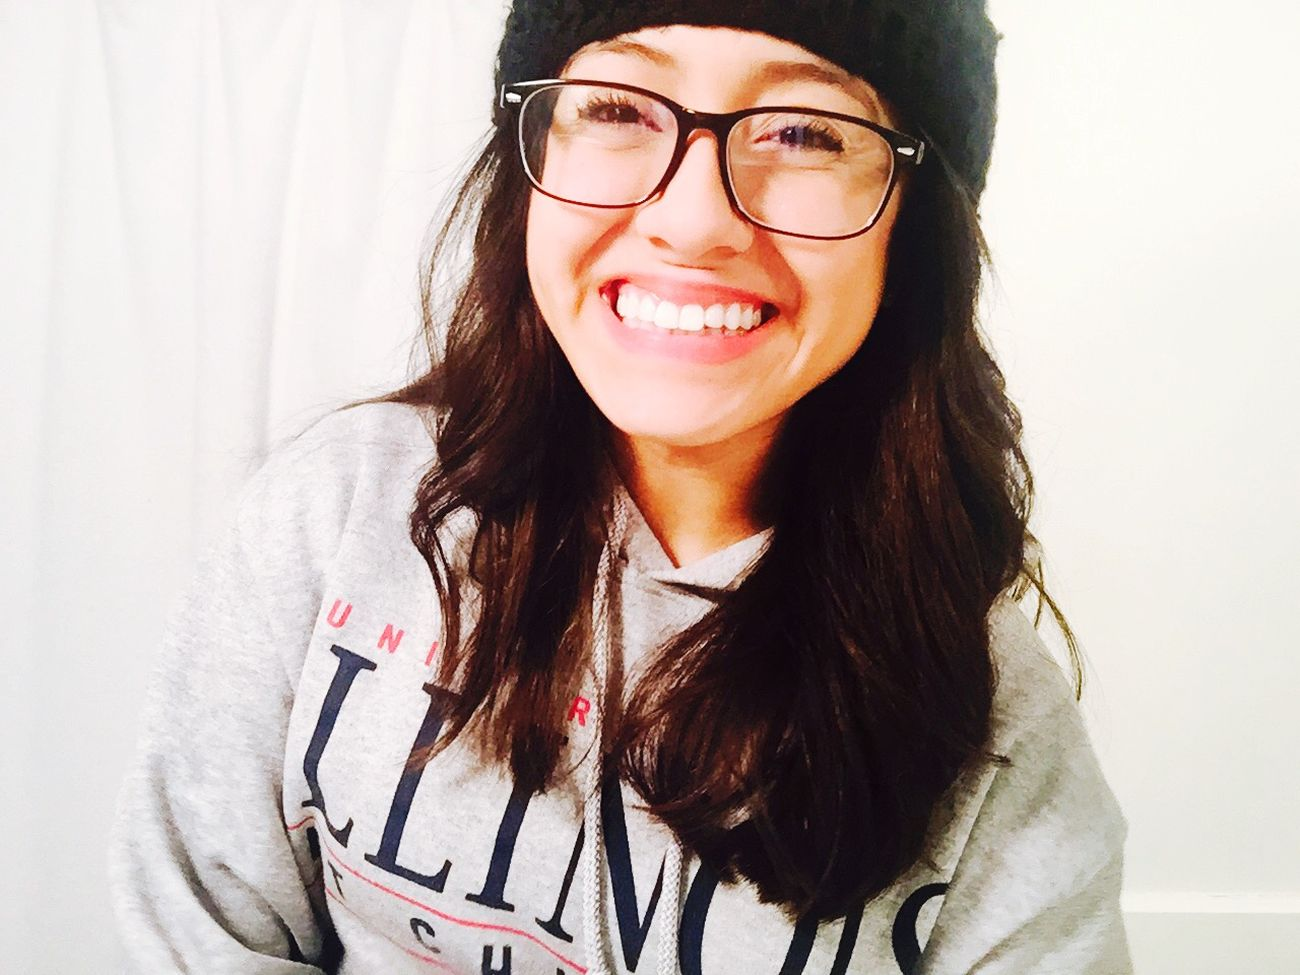 Always keeping a smile on my face! My Nerd Glasses Uic Ilovebigsweaters Enjoying Life